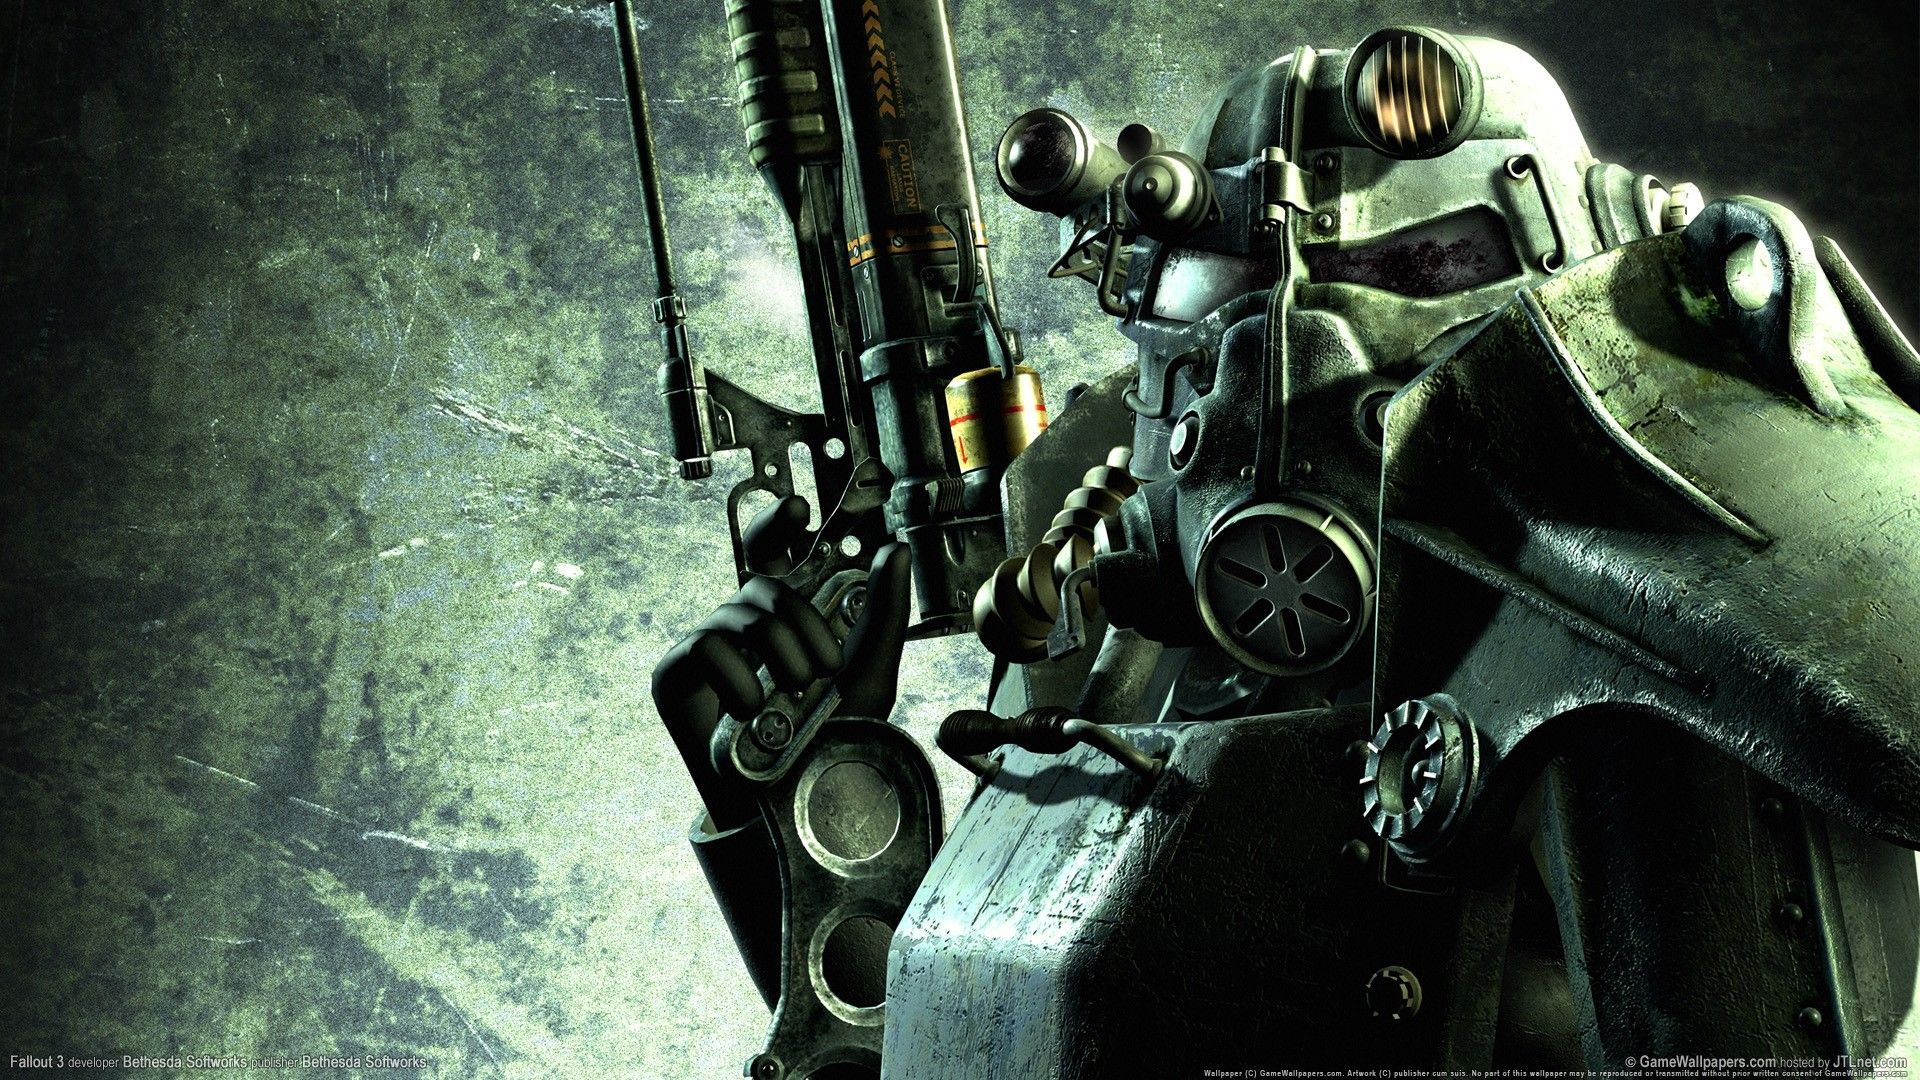 Fallout 3 Fun Game For Those Who Have About 200 Hours To Kill Fallout Wallpaper Fallout 3 Fallout New Vegas